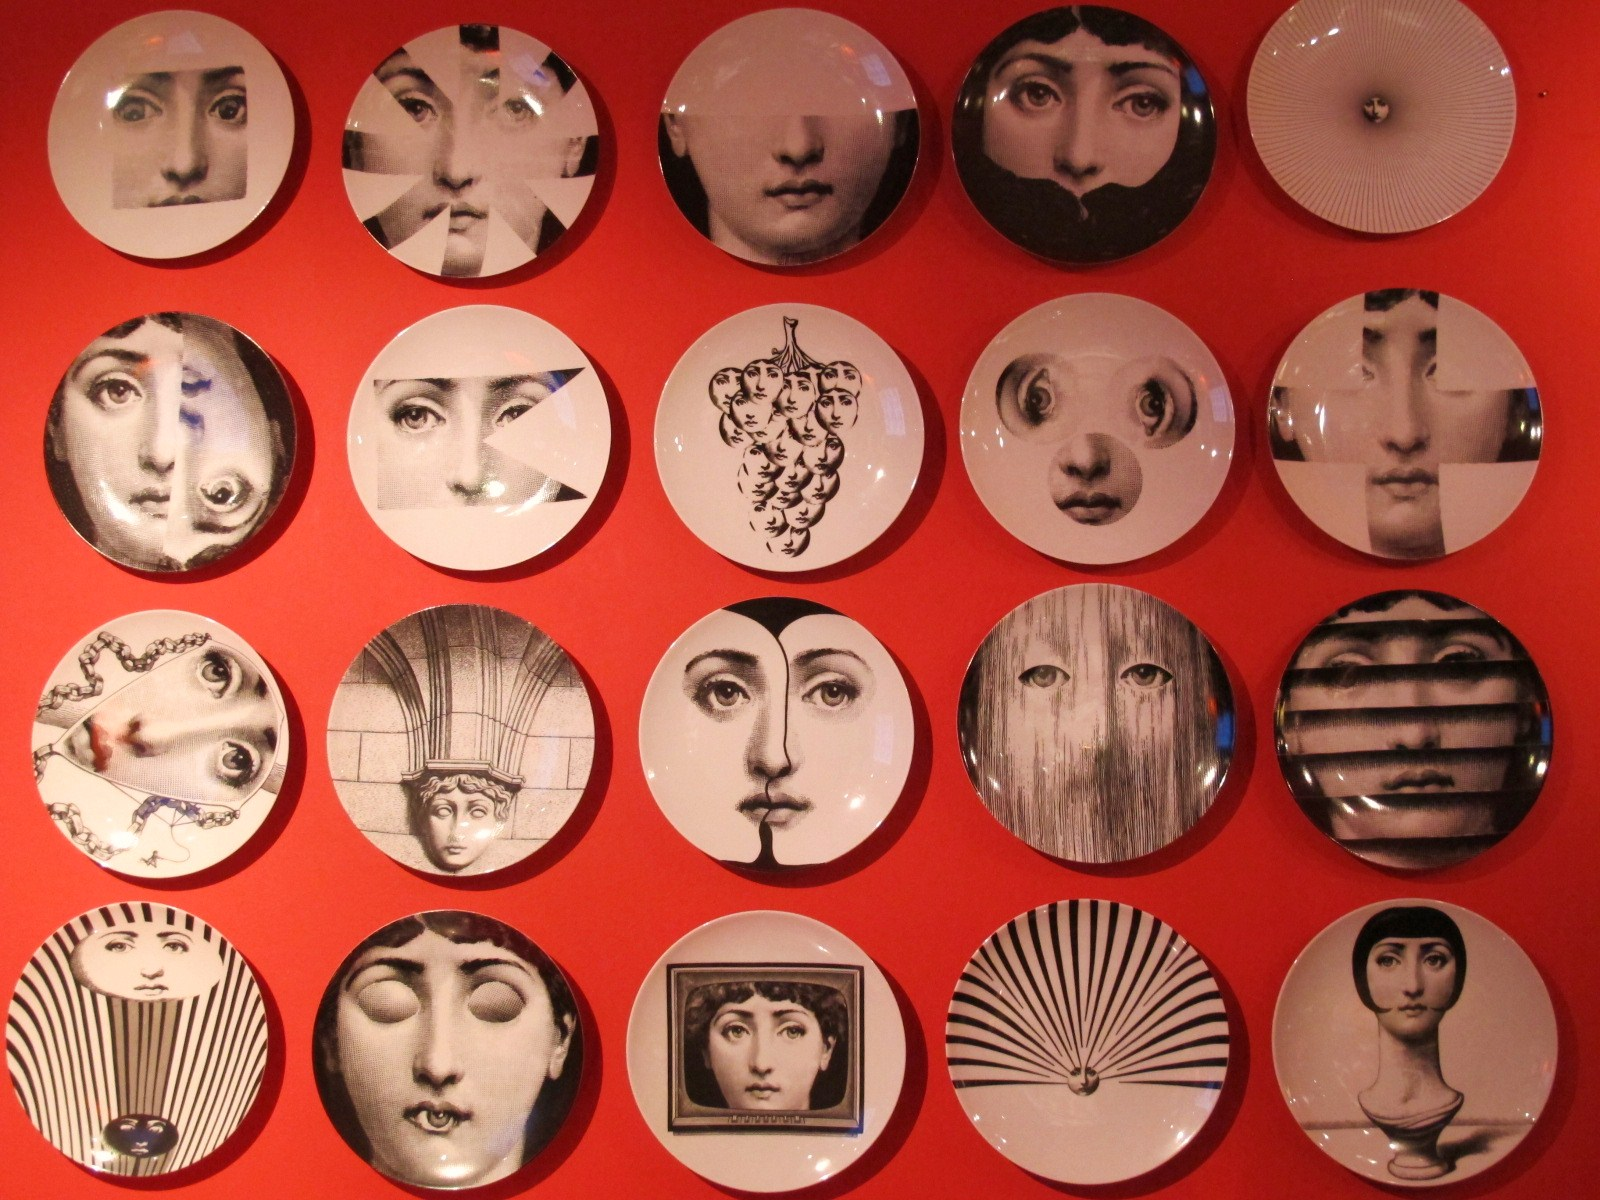 papier peint fornasetti visage. Black Bedroom Furniture Sets. Home Design Ideas